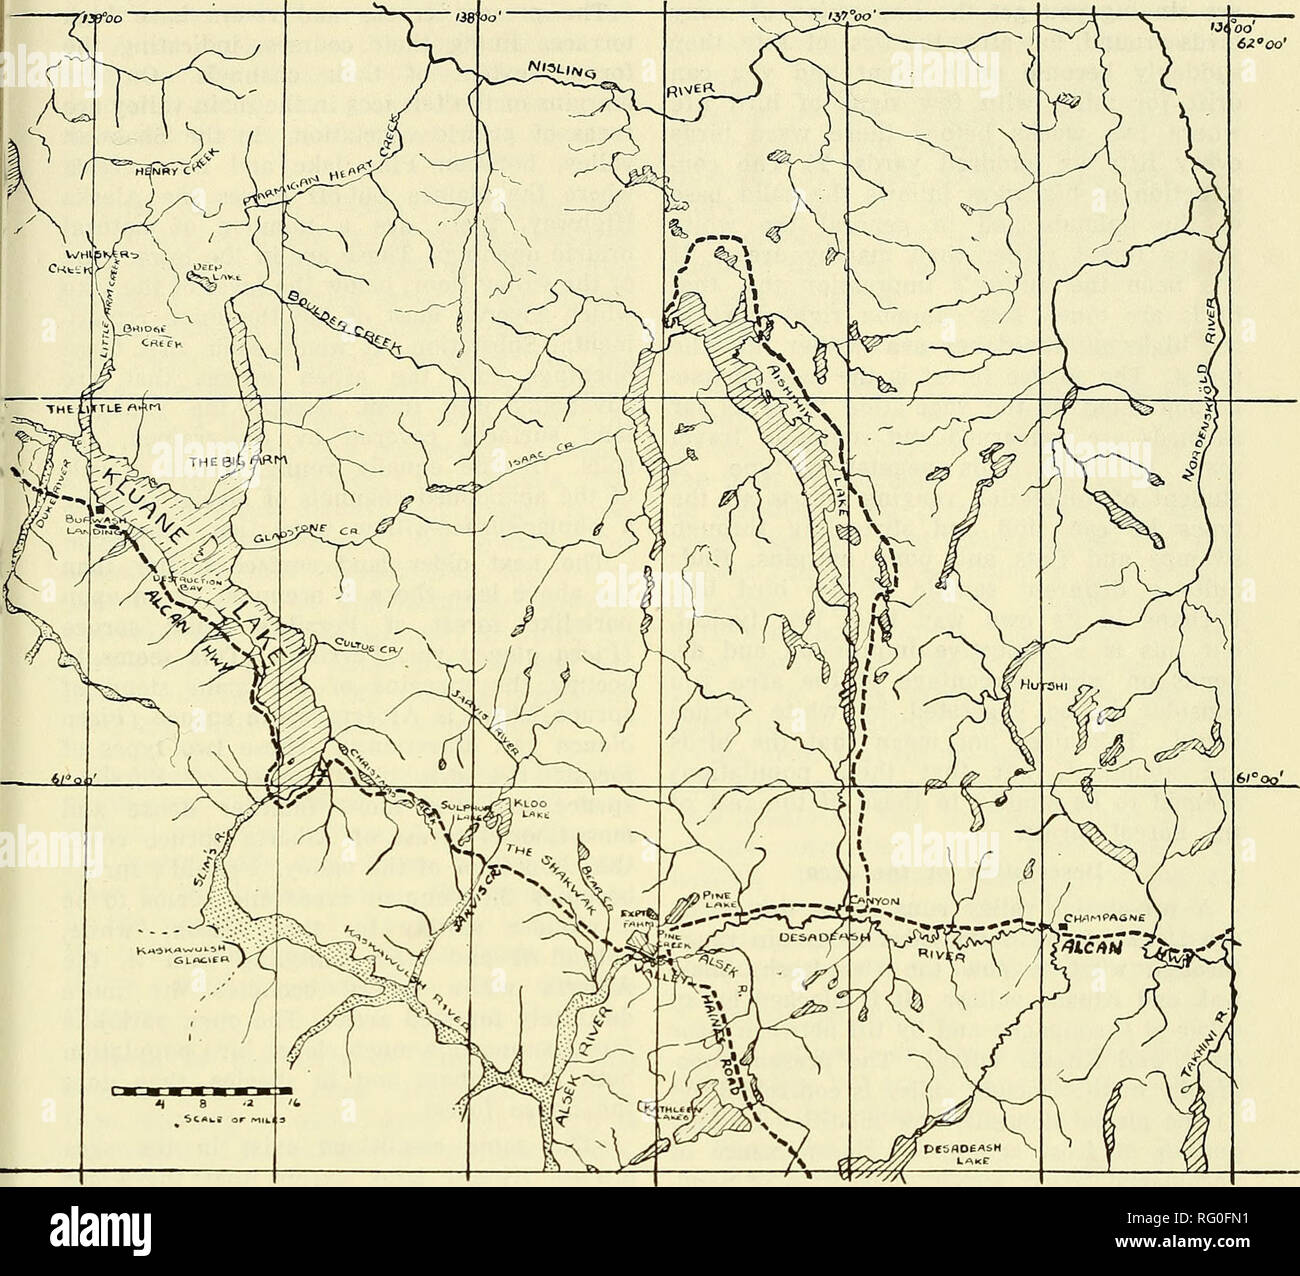 The Canadian field-naturalist. July-Sept., 1953] The Canadian Field on palau road map, british columbia map, nh new hampshire road map, antlers road map, bc road map, n. carolina road map, alaska road map, northern manitoba road map, lacrosse road map, sierra road map, big bend national park road map, canada road map, pottawatomie county road map, s. dakota road map, saint john road map, carpet road map, central oklahoma road map, bethany road map, southwest ontario road map, kingfisher road map,